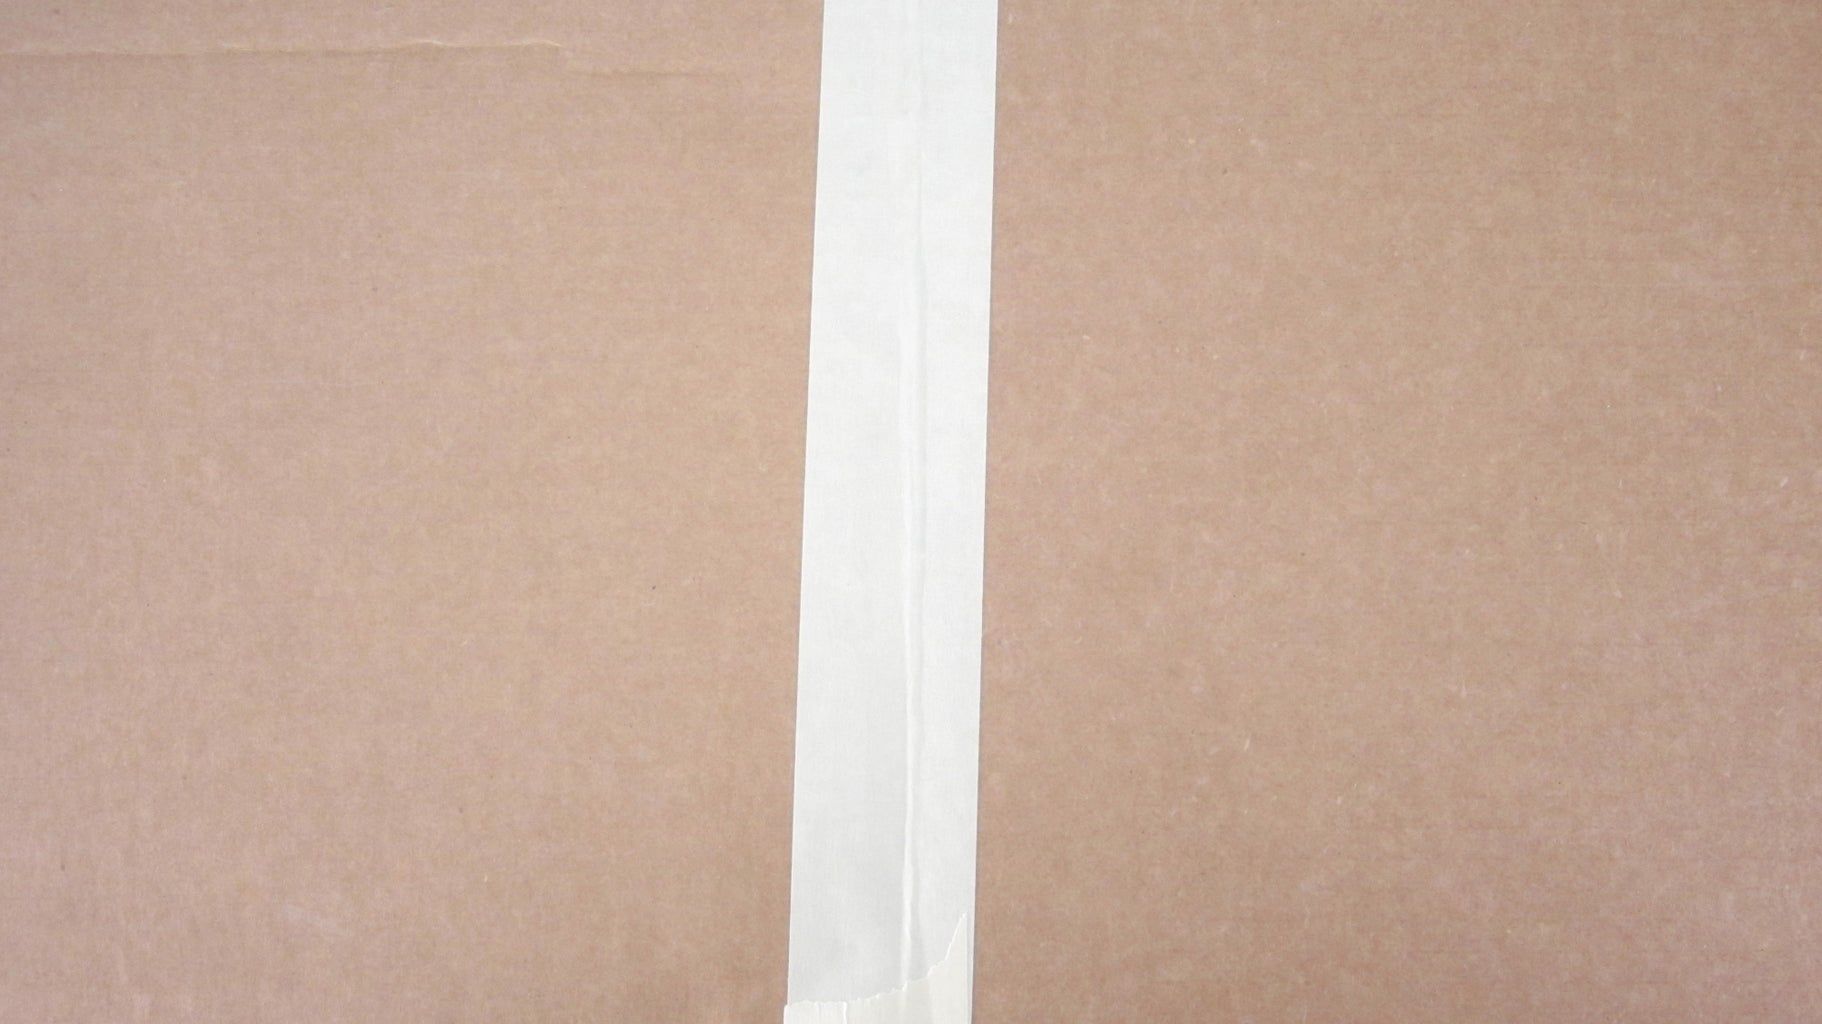 Trim the Paper and Attach It to a Cardboard Backing